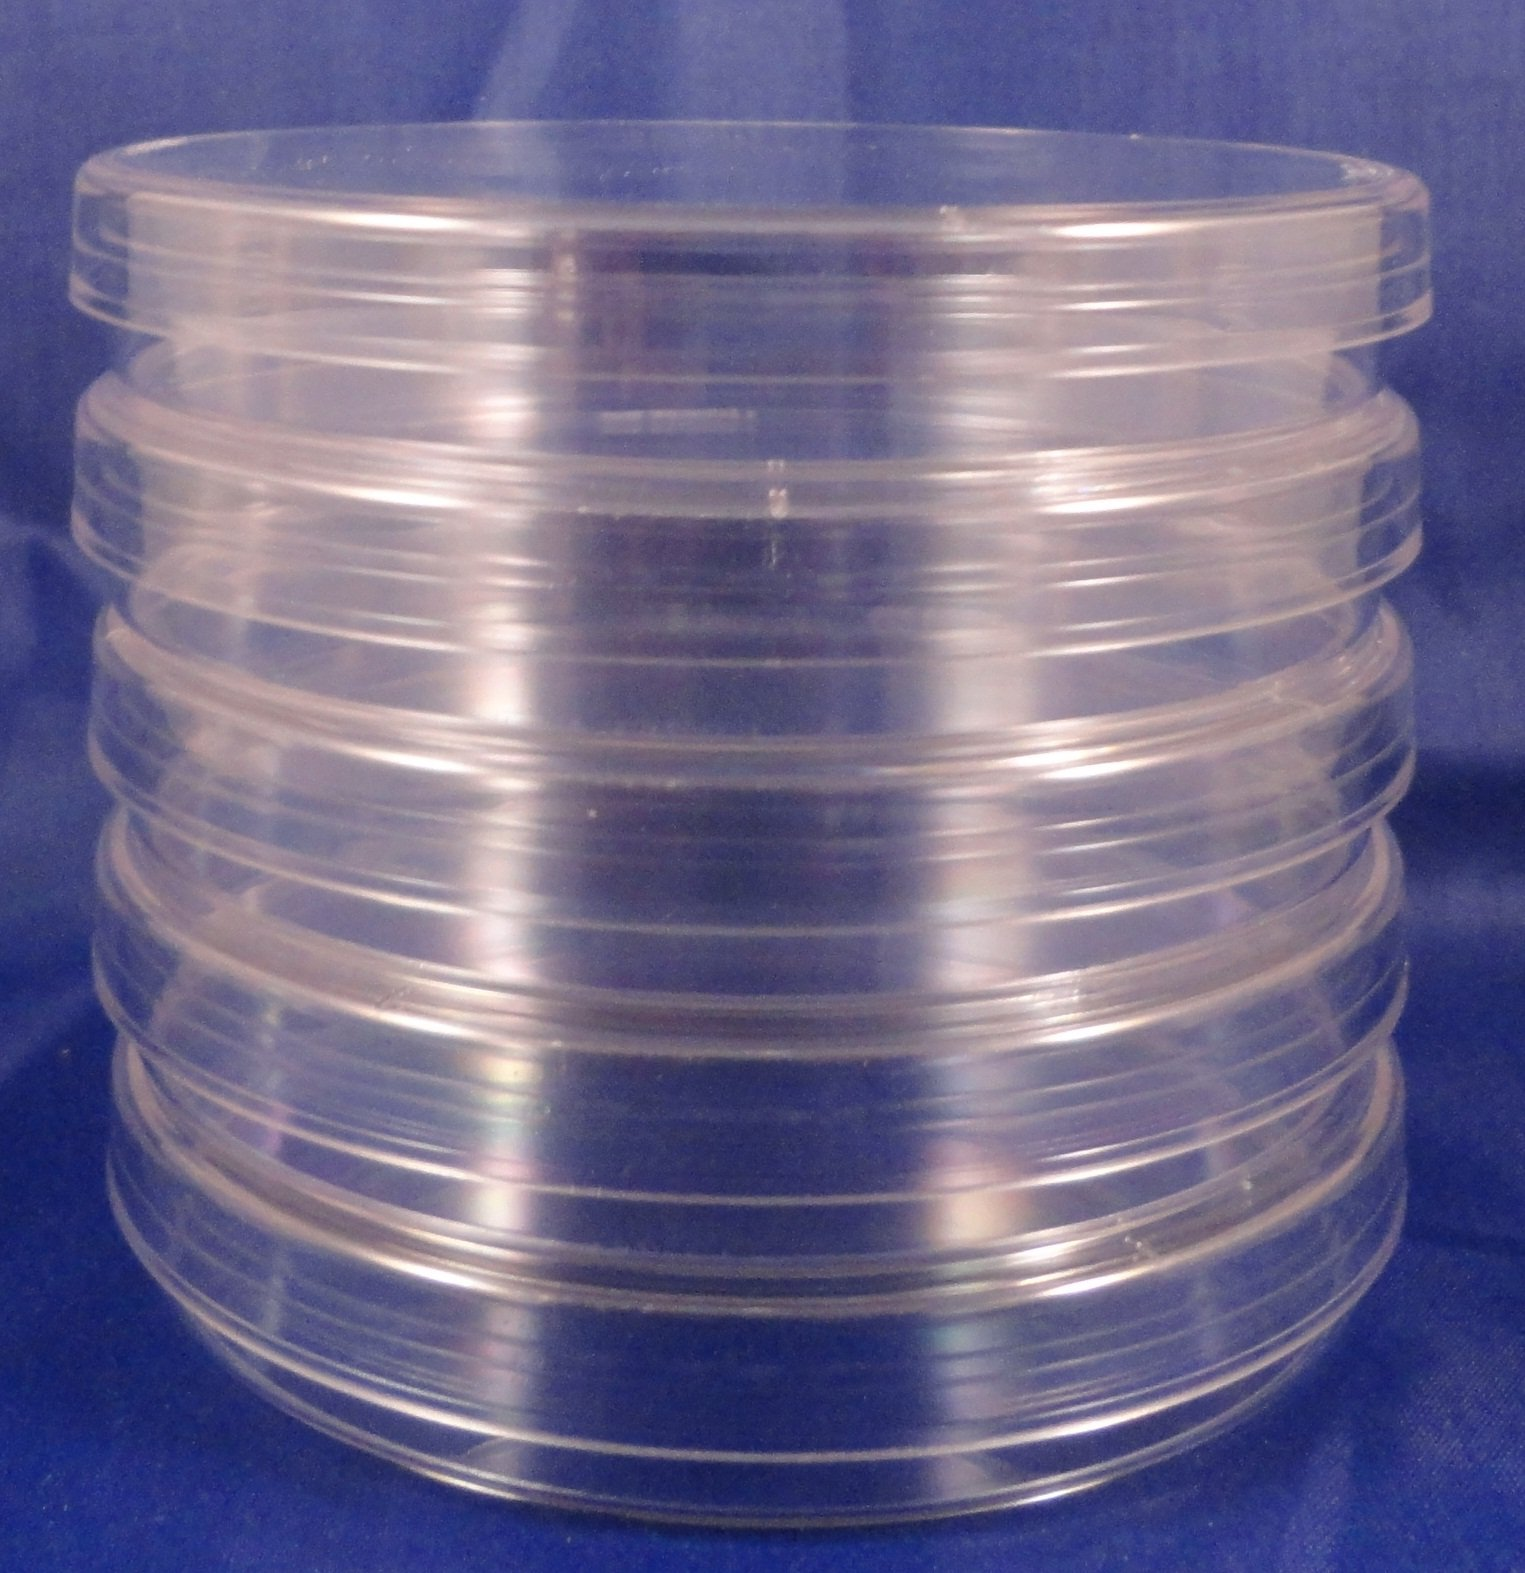 25 Pack Sterile Plastic Petri Dishes, 100mm Dia x 15mm Deep, with Lid by HEAVY DUTY PETRI DISHES (Image #1)